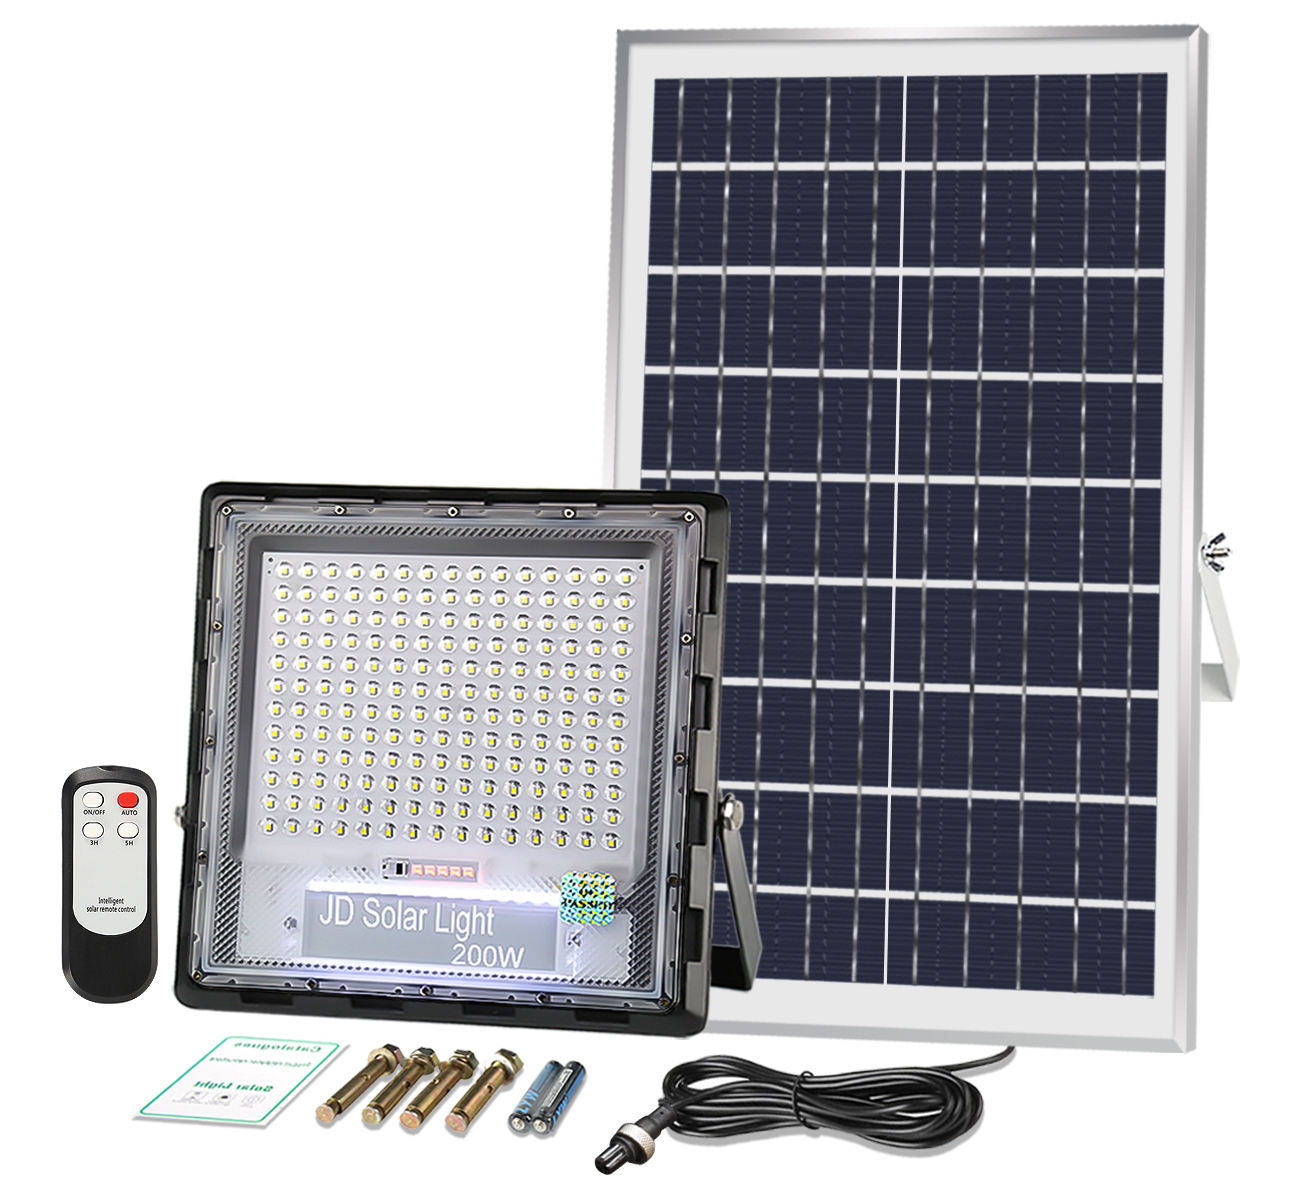 Memancing Perahu LED Sensor Solar Flood Light 200 Watt